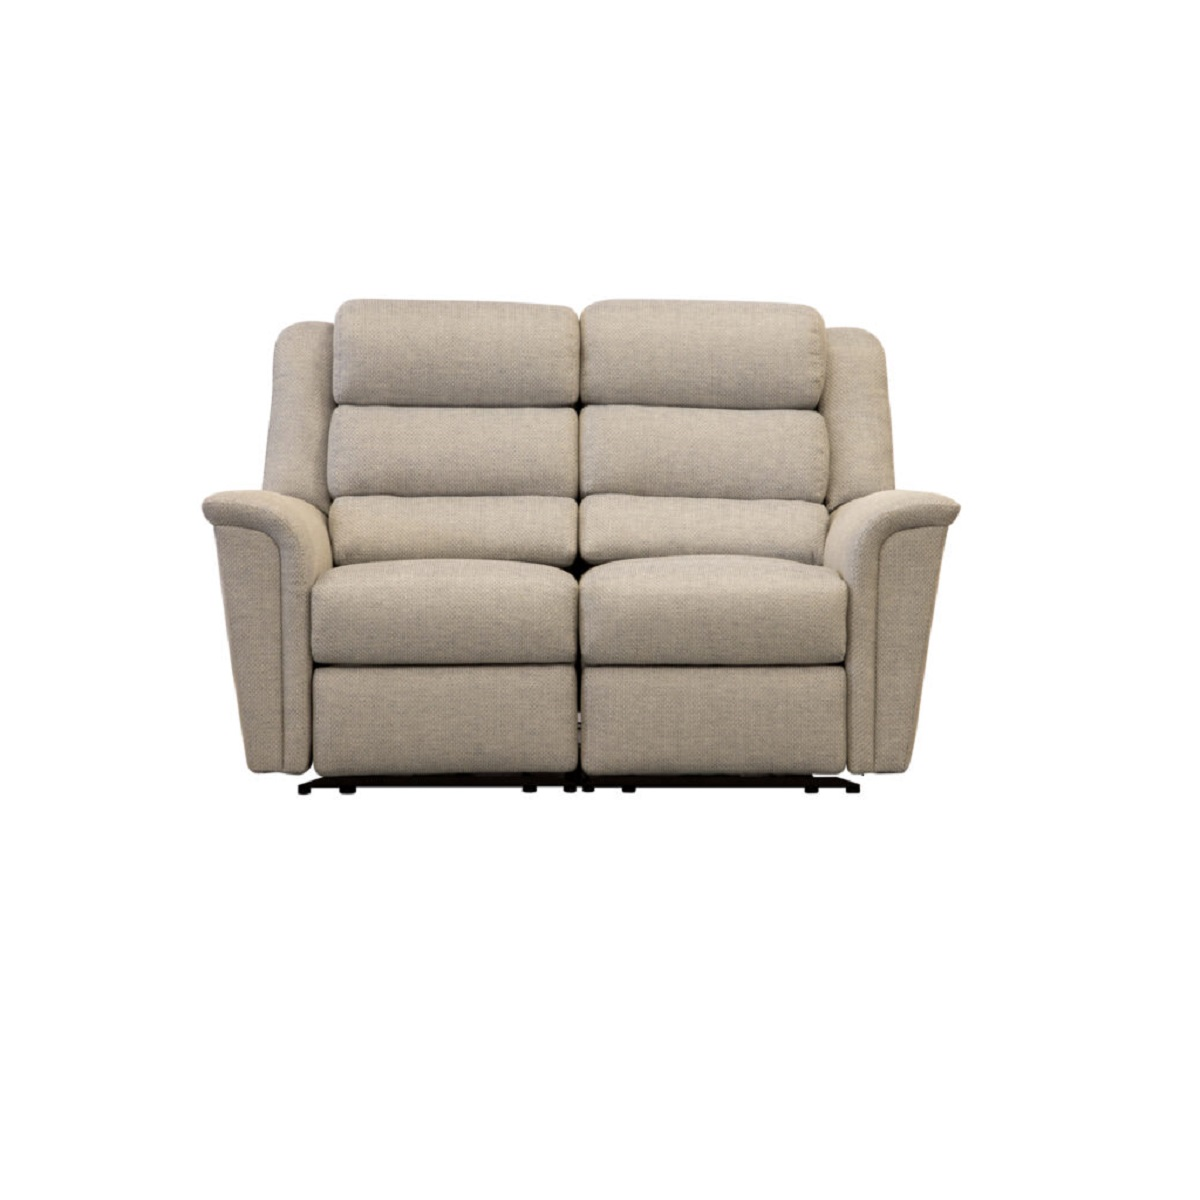 Colorado Large 2 Seater Recliner Sofa